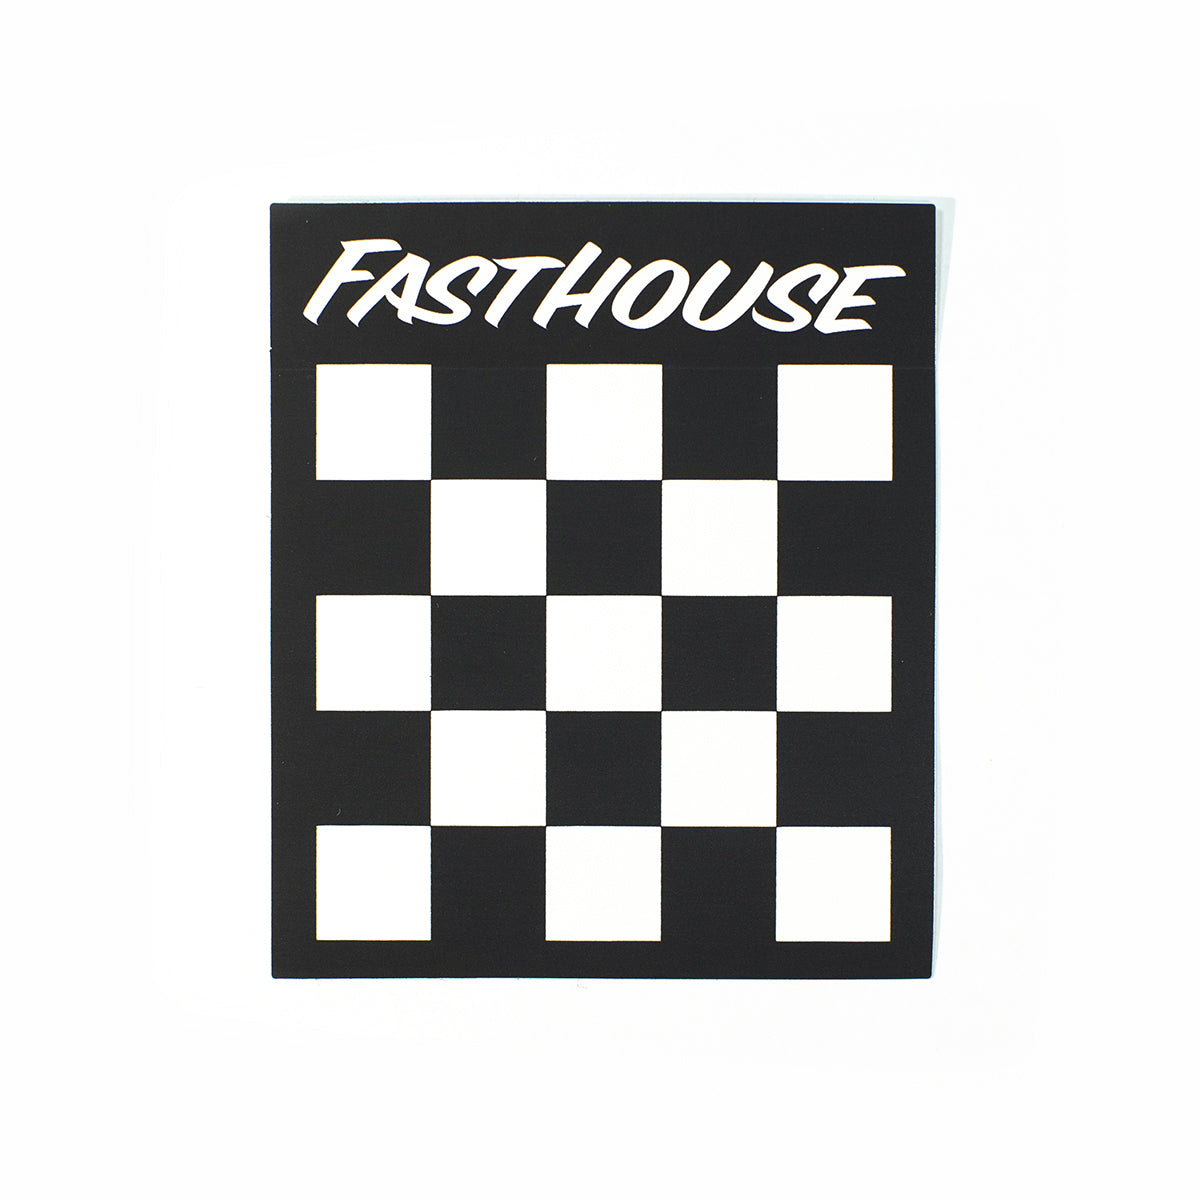 Fasthouse - Checkers Sticker